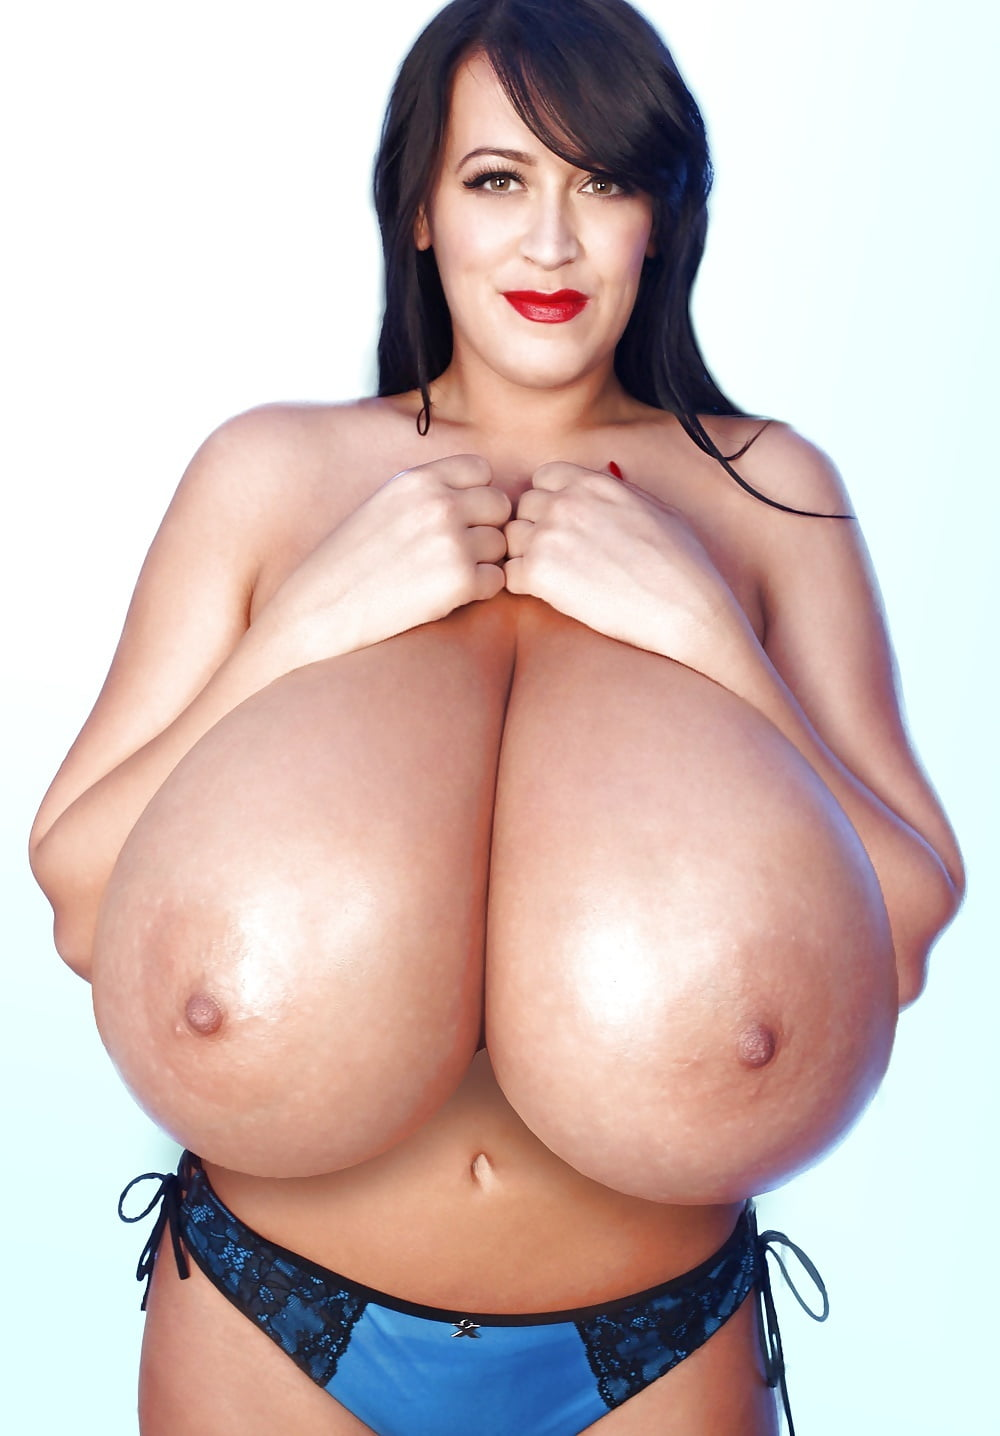 pics-of-huge-tits-oversized-sex-toys